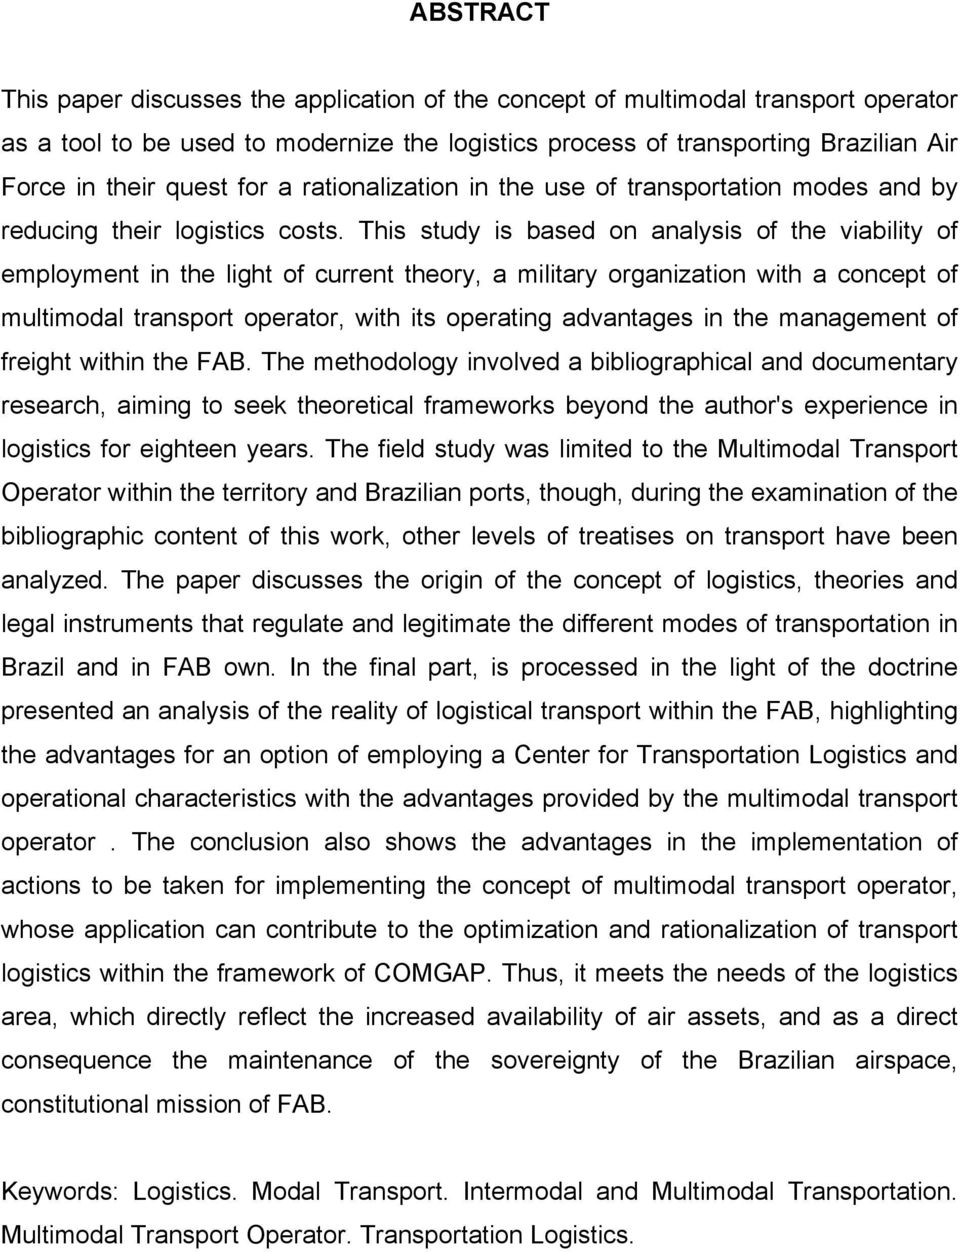 This study is based on analysis of the viability of employment in the light of current theory, a military organization with a concept of multimodal transport operator, with its operating advantages